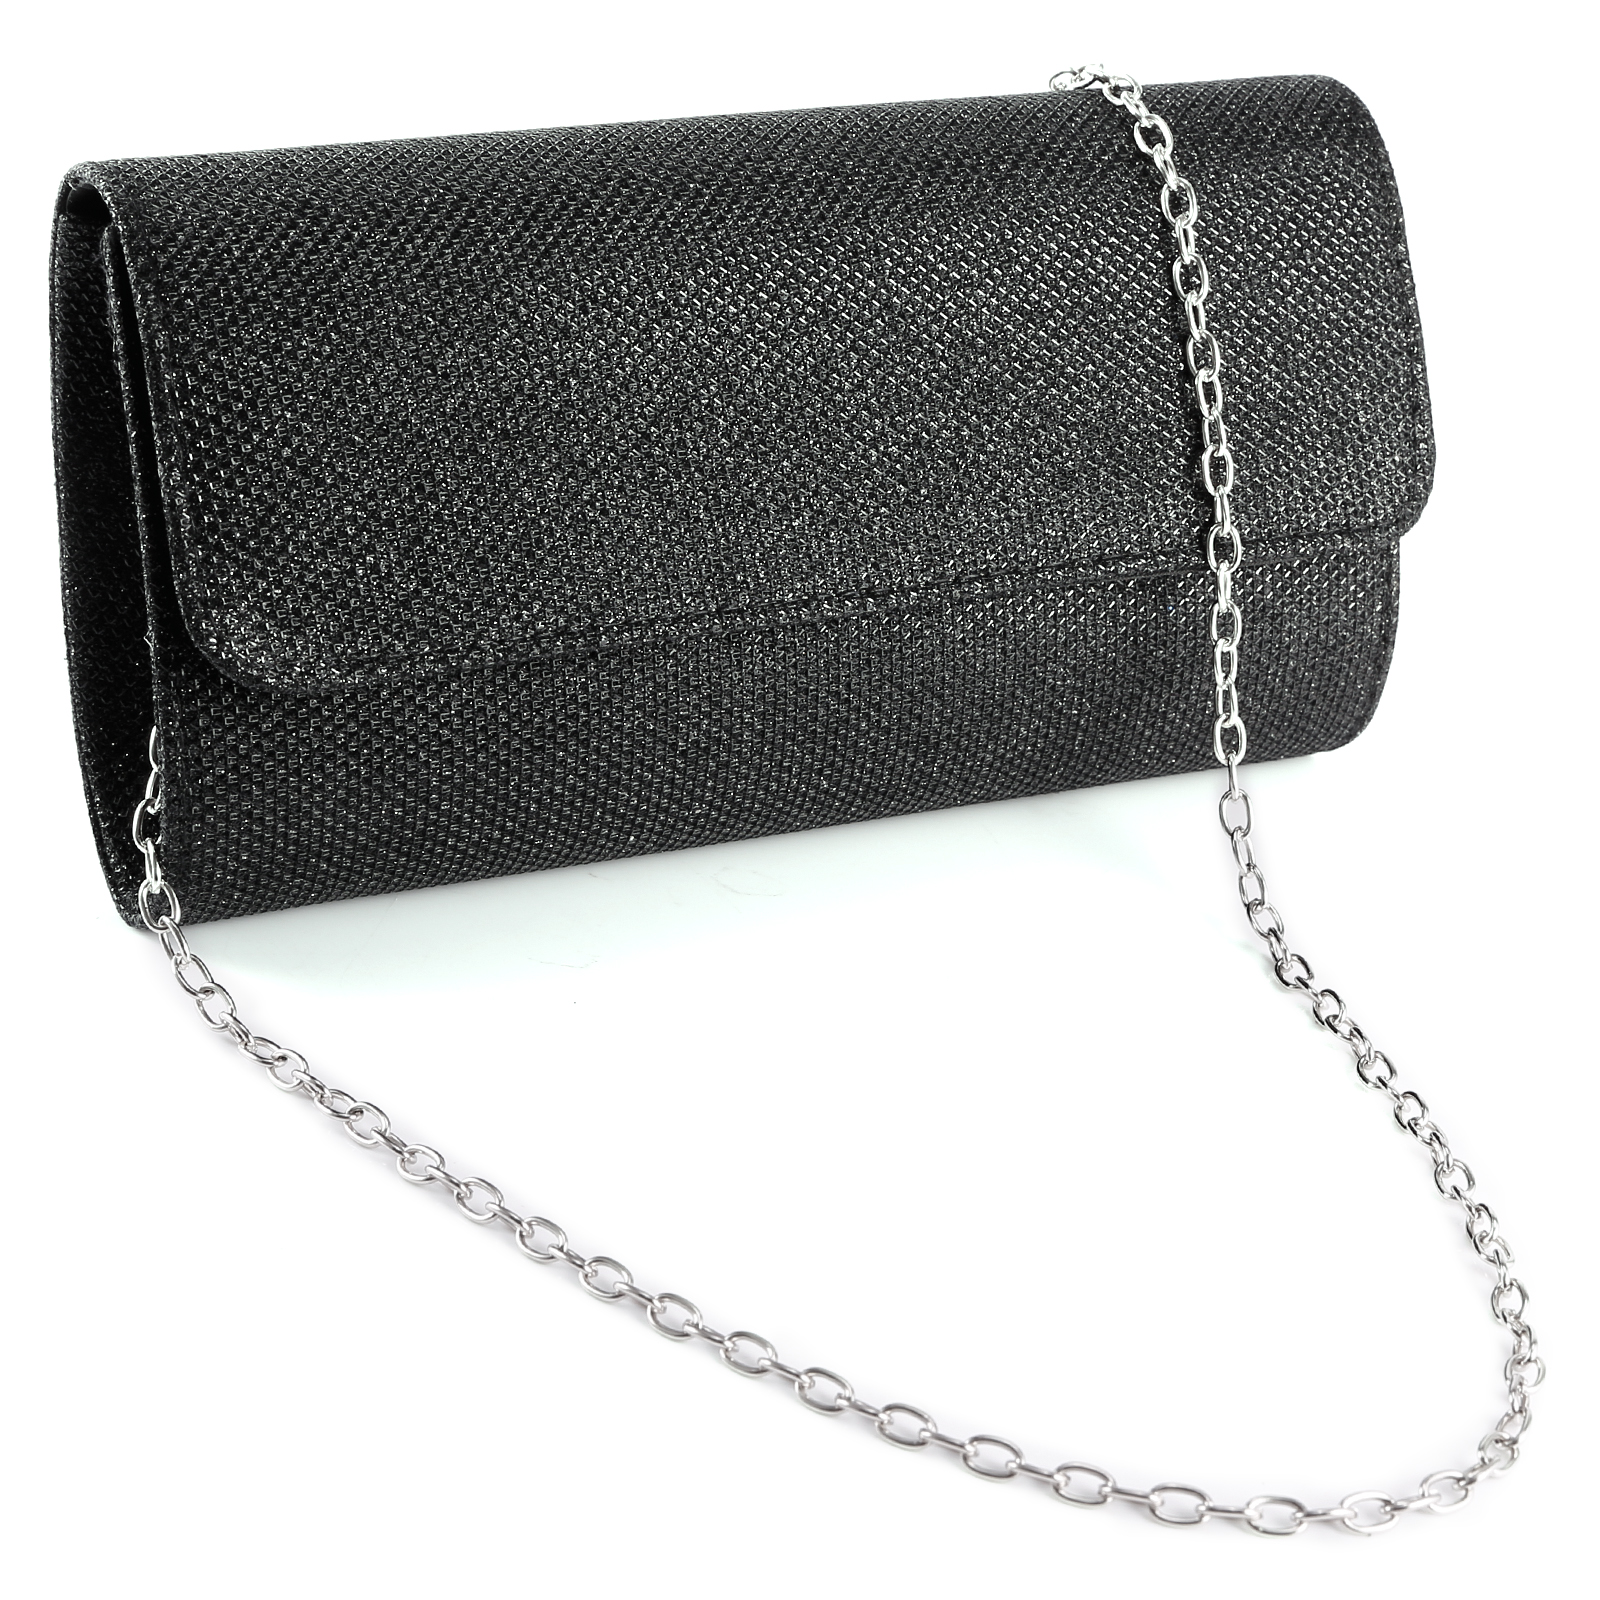 Ladies Clutch Purse, Wholesale Various High Quality Ladies Clutch Purse Products from Global Ladies Clutch Purse Suppliers and Ladies Clutch Purse Factory,Importer,Exporter at gothicphotos.ga